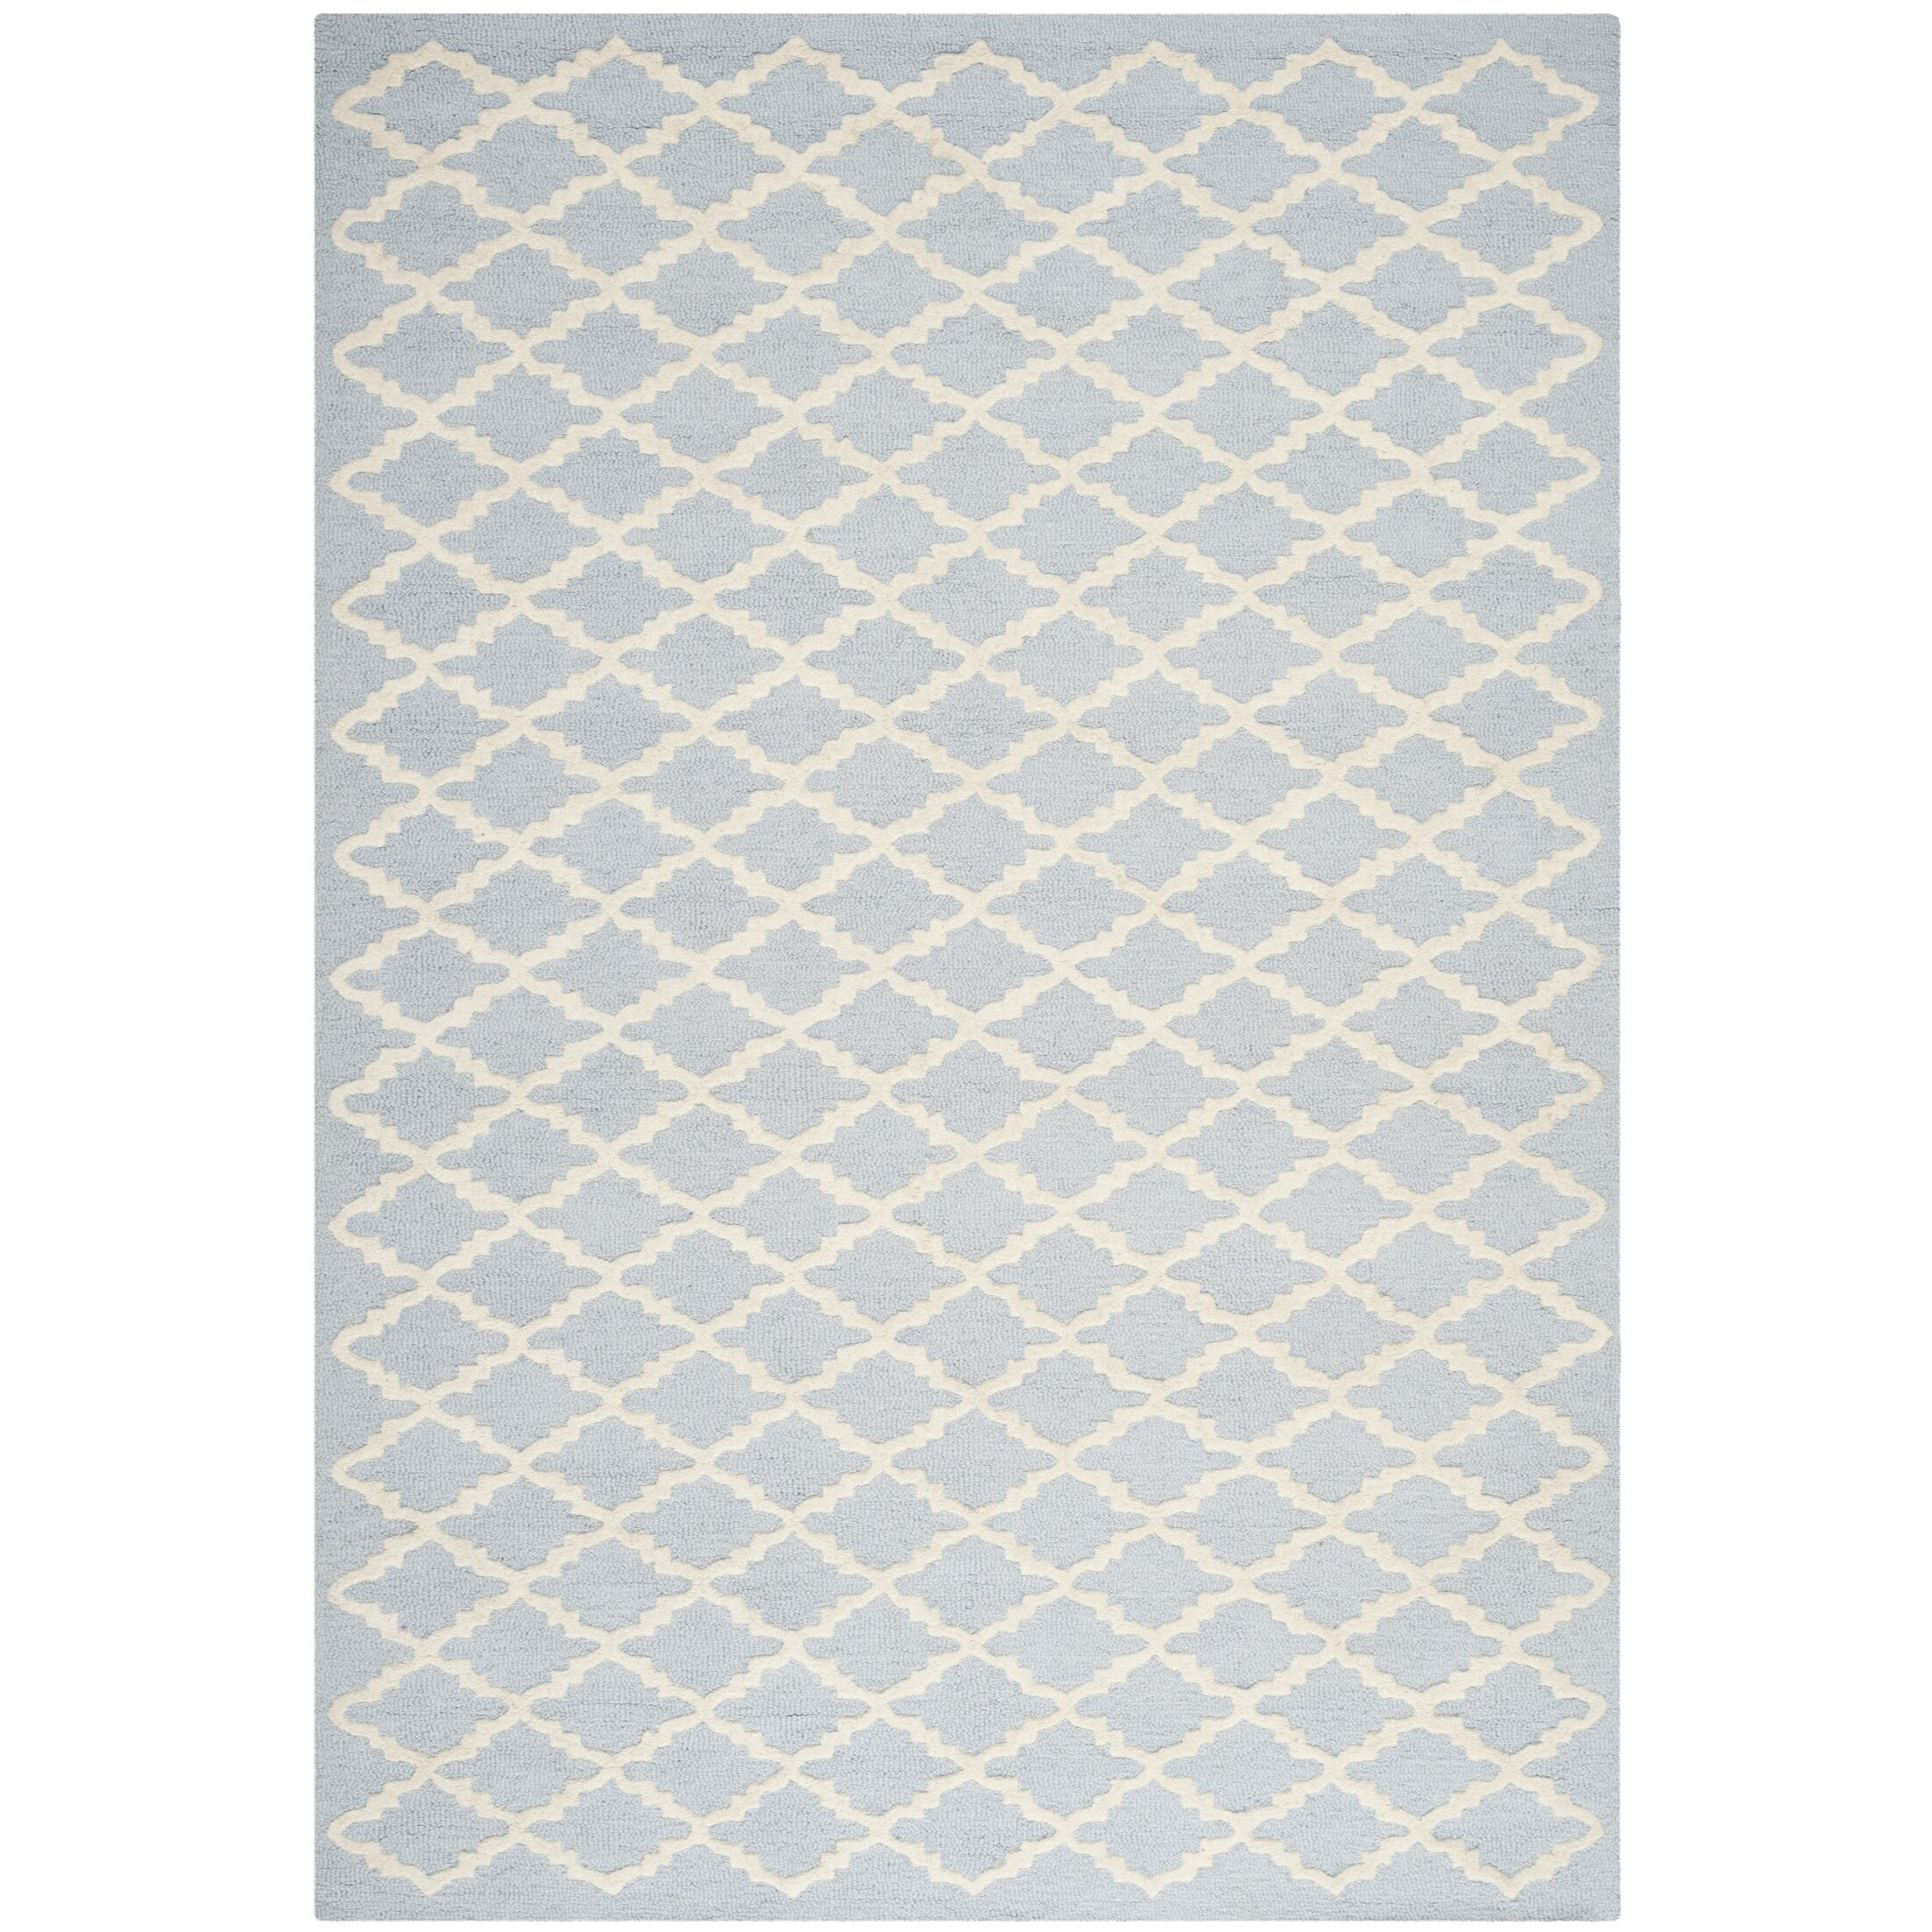 Darla Hand-Tufted Wool Light Blue/Ivory Area Rug Rug Size: Rectangle 6' x 9'